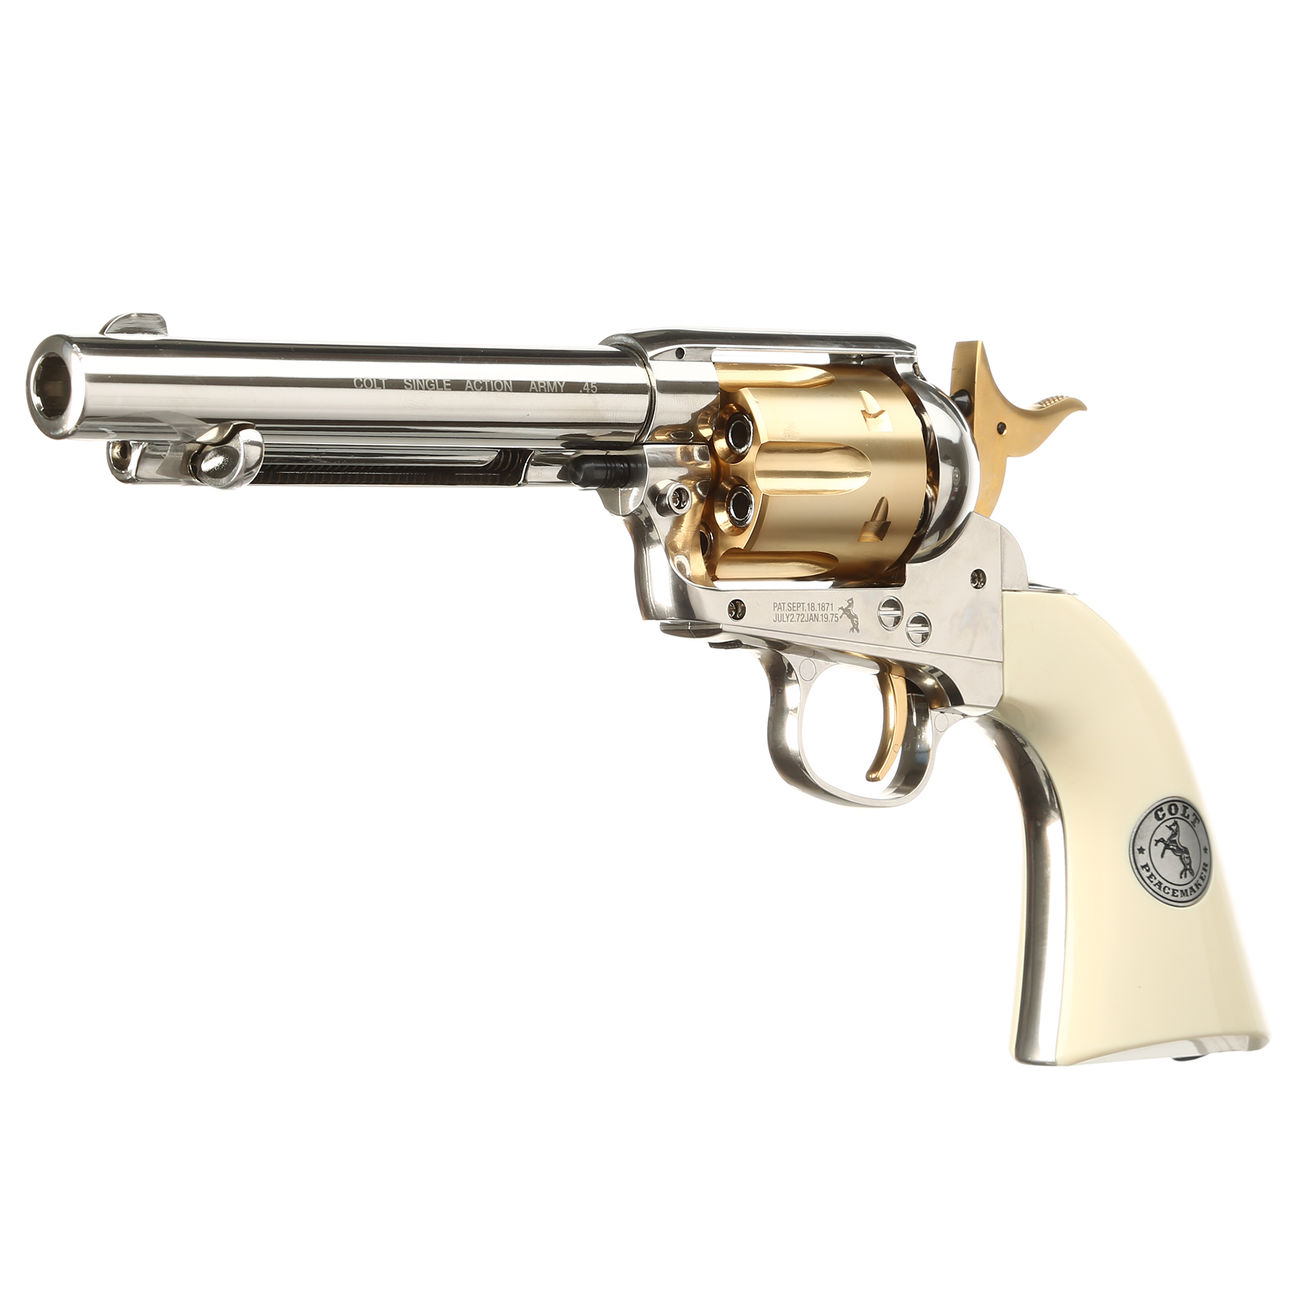 Colt Single Action Army 45 gold / nickel finish CO2 Revolver Kal. 4,5mm Diabolo gezogener Lauf 1